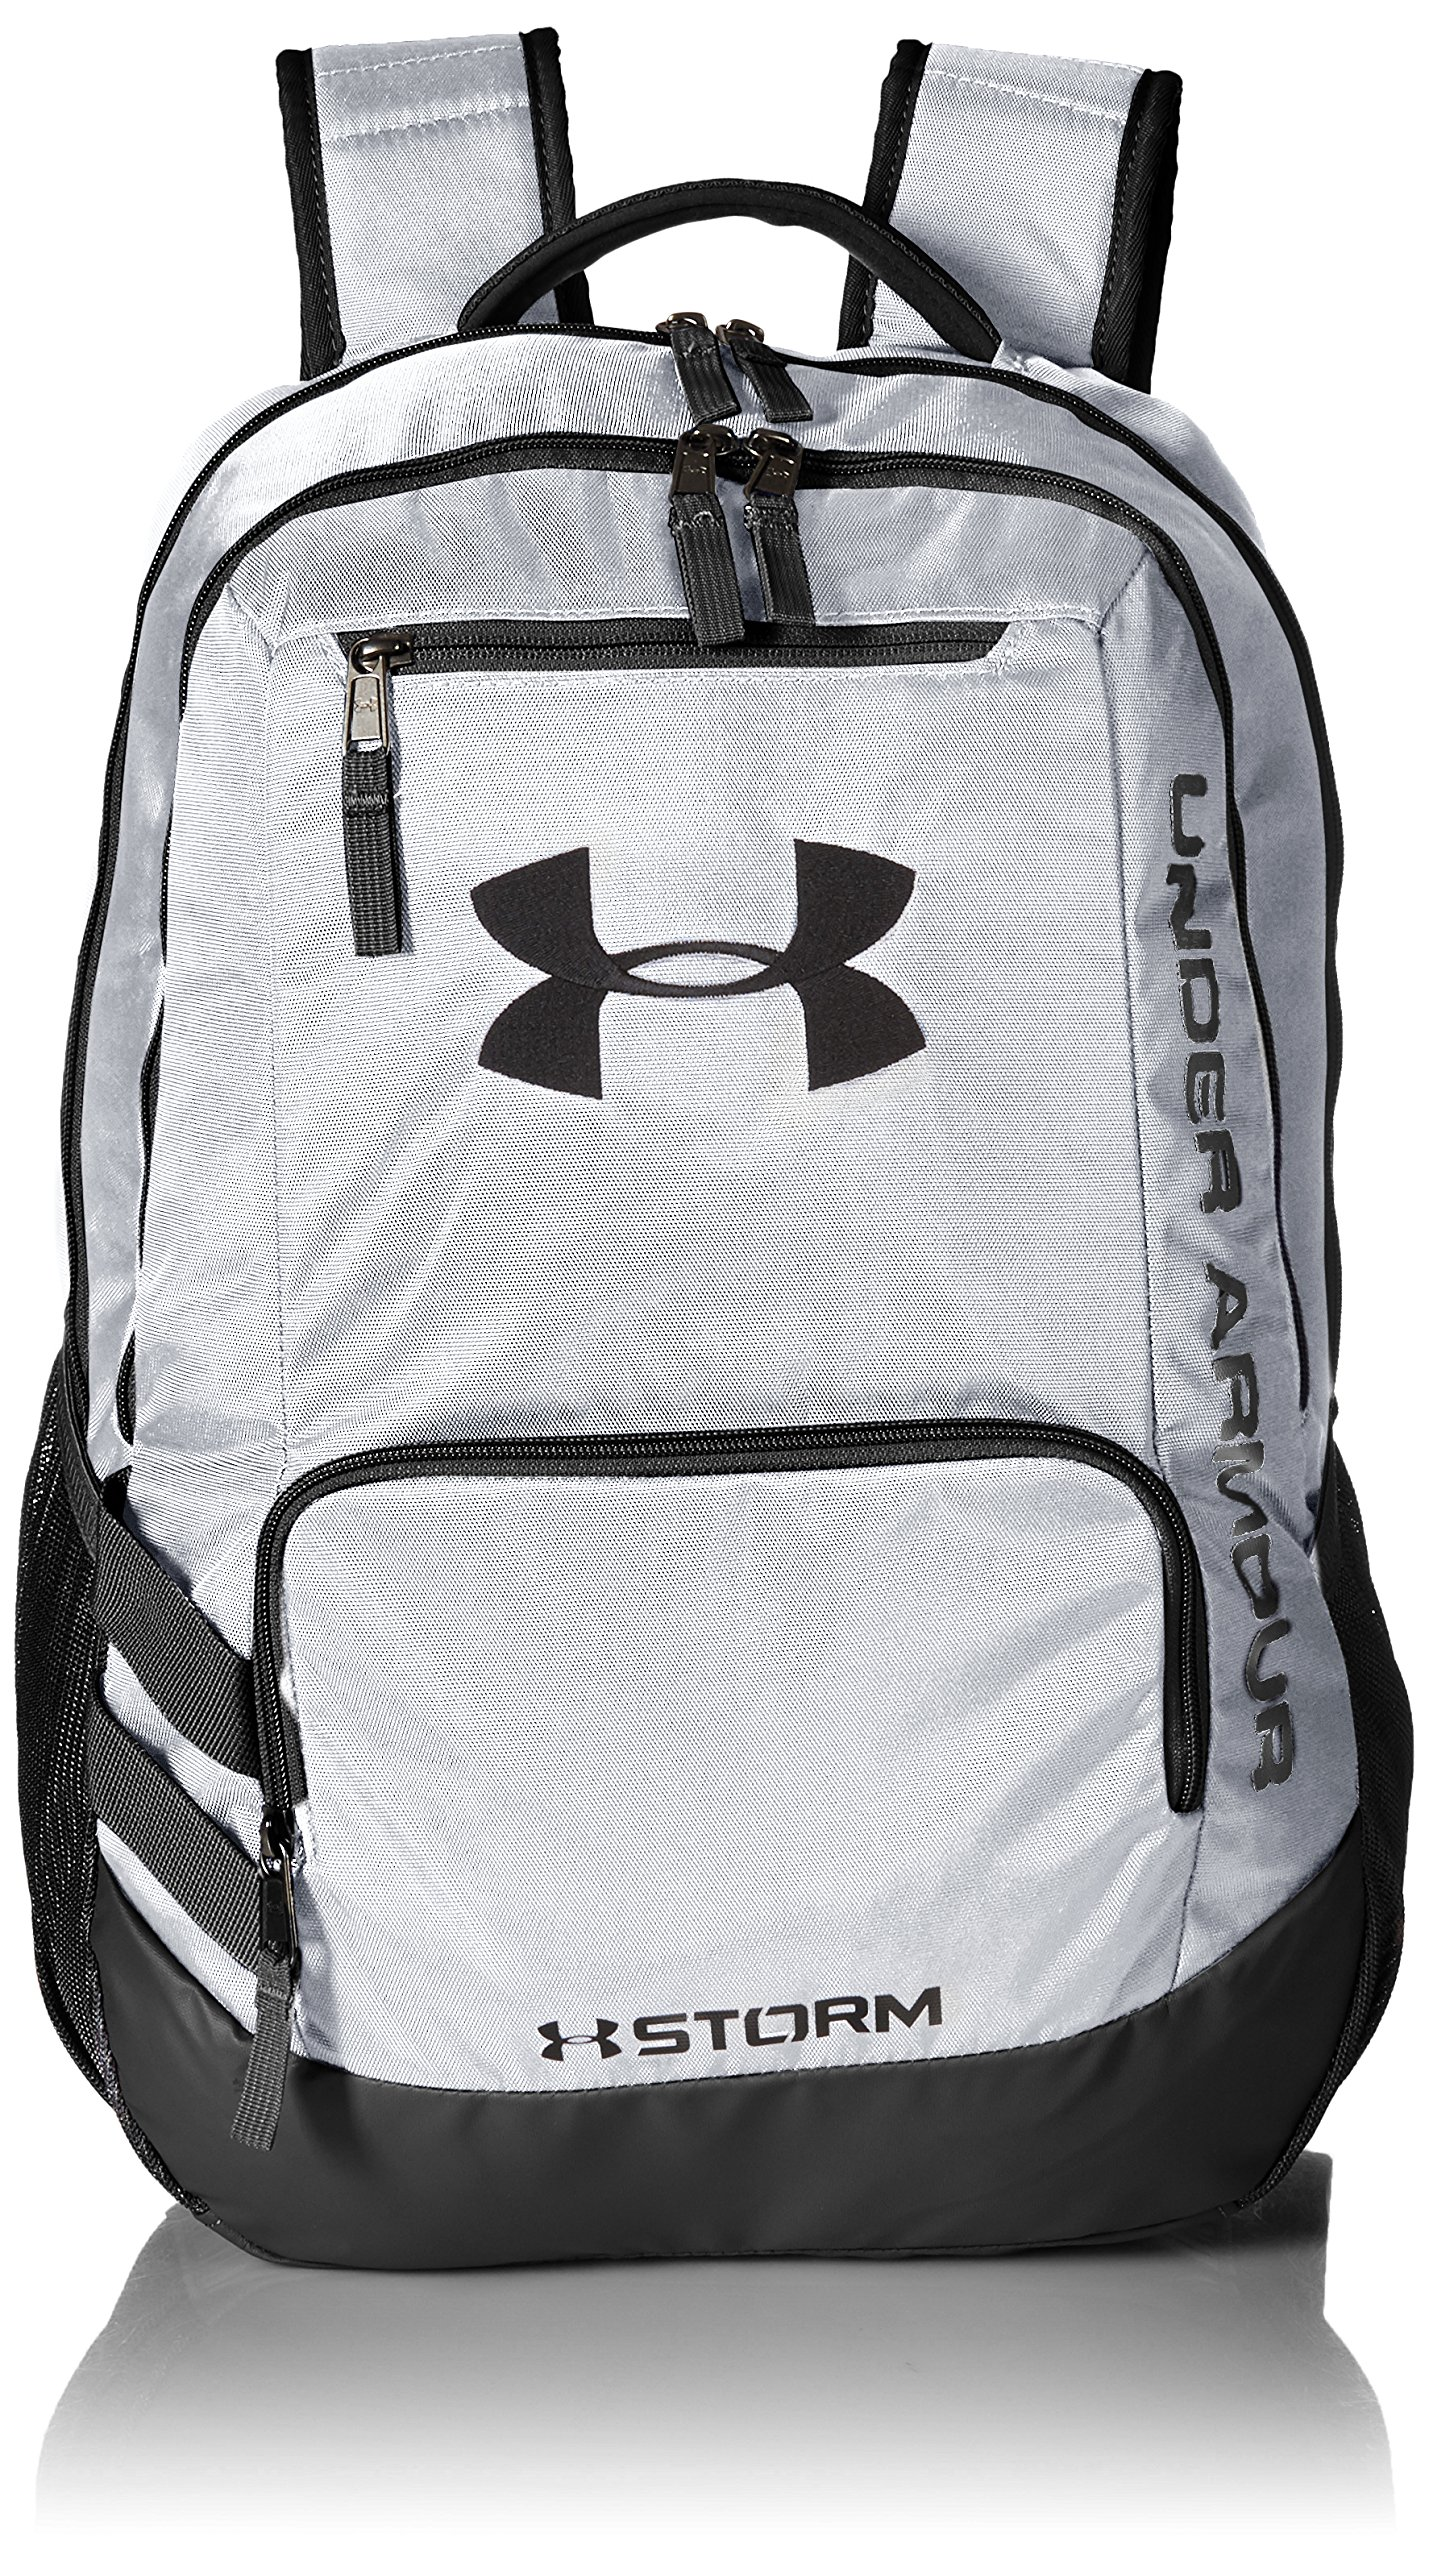 Under Armour Unisex Team Hustle Backpack, White (100)/Black, One Size by Under Armour